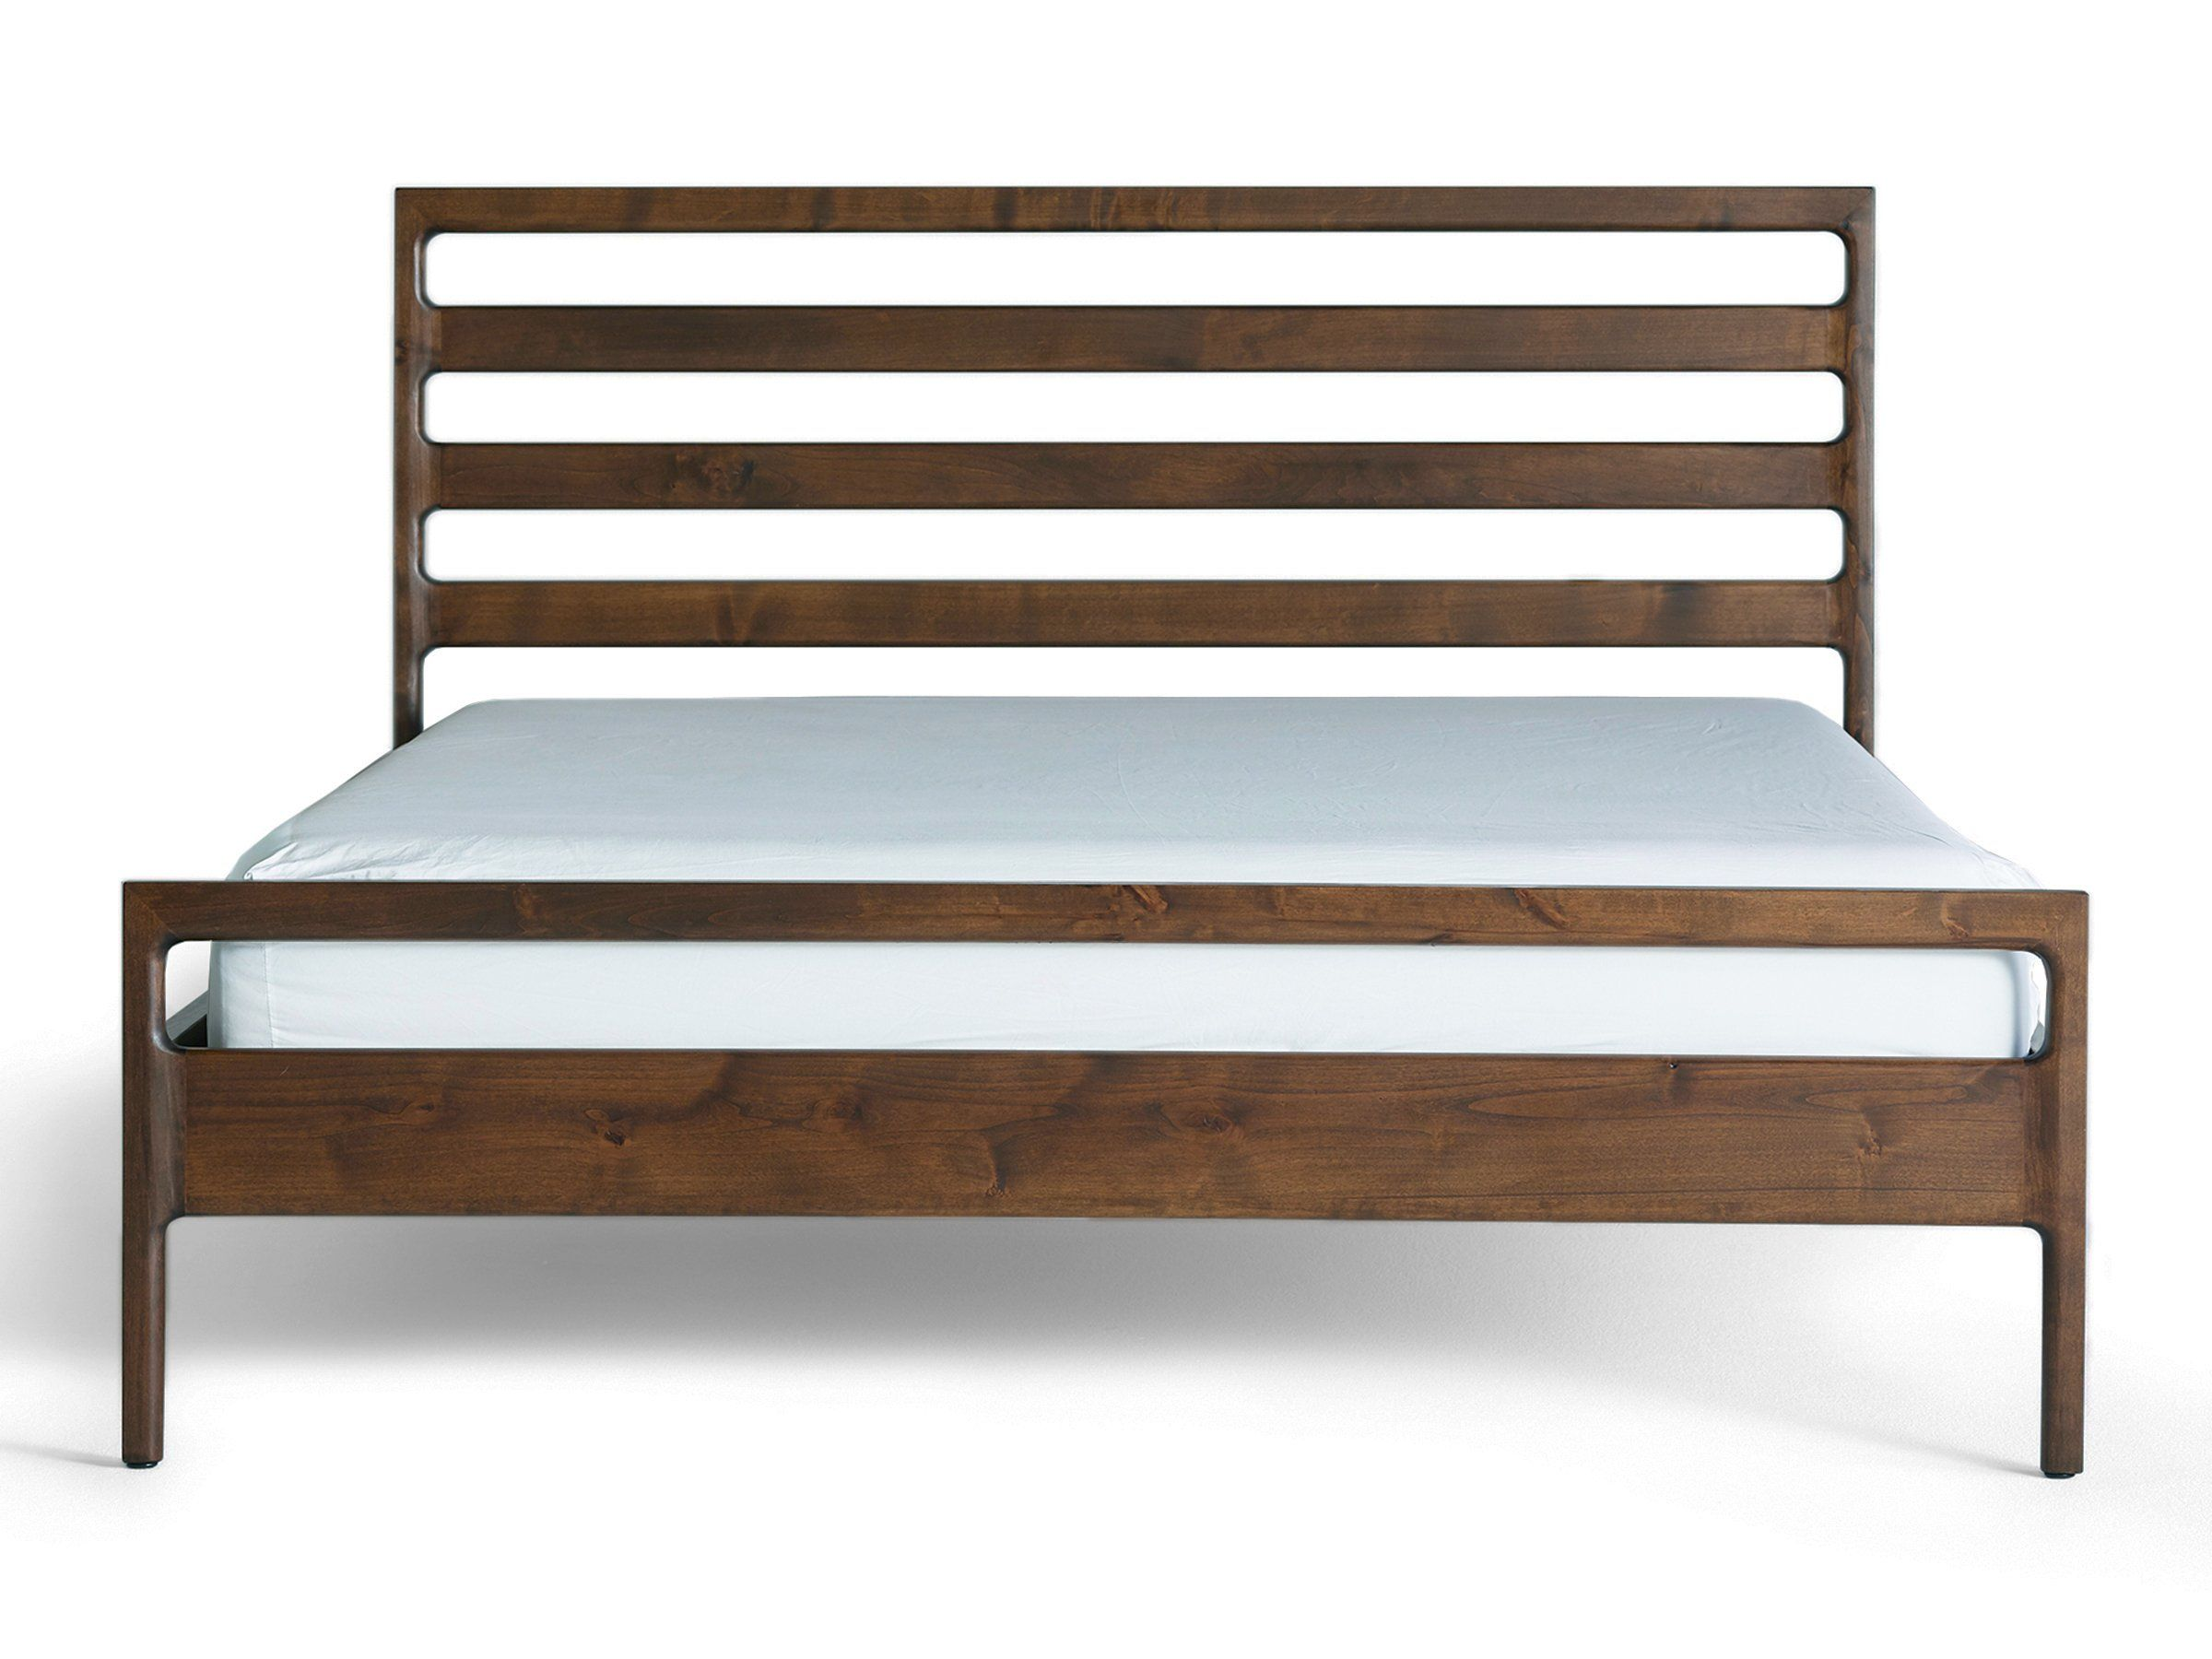 Handmade Wood Bed Frame Wood Bed Frame Bed Frame Wood Beds